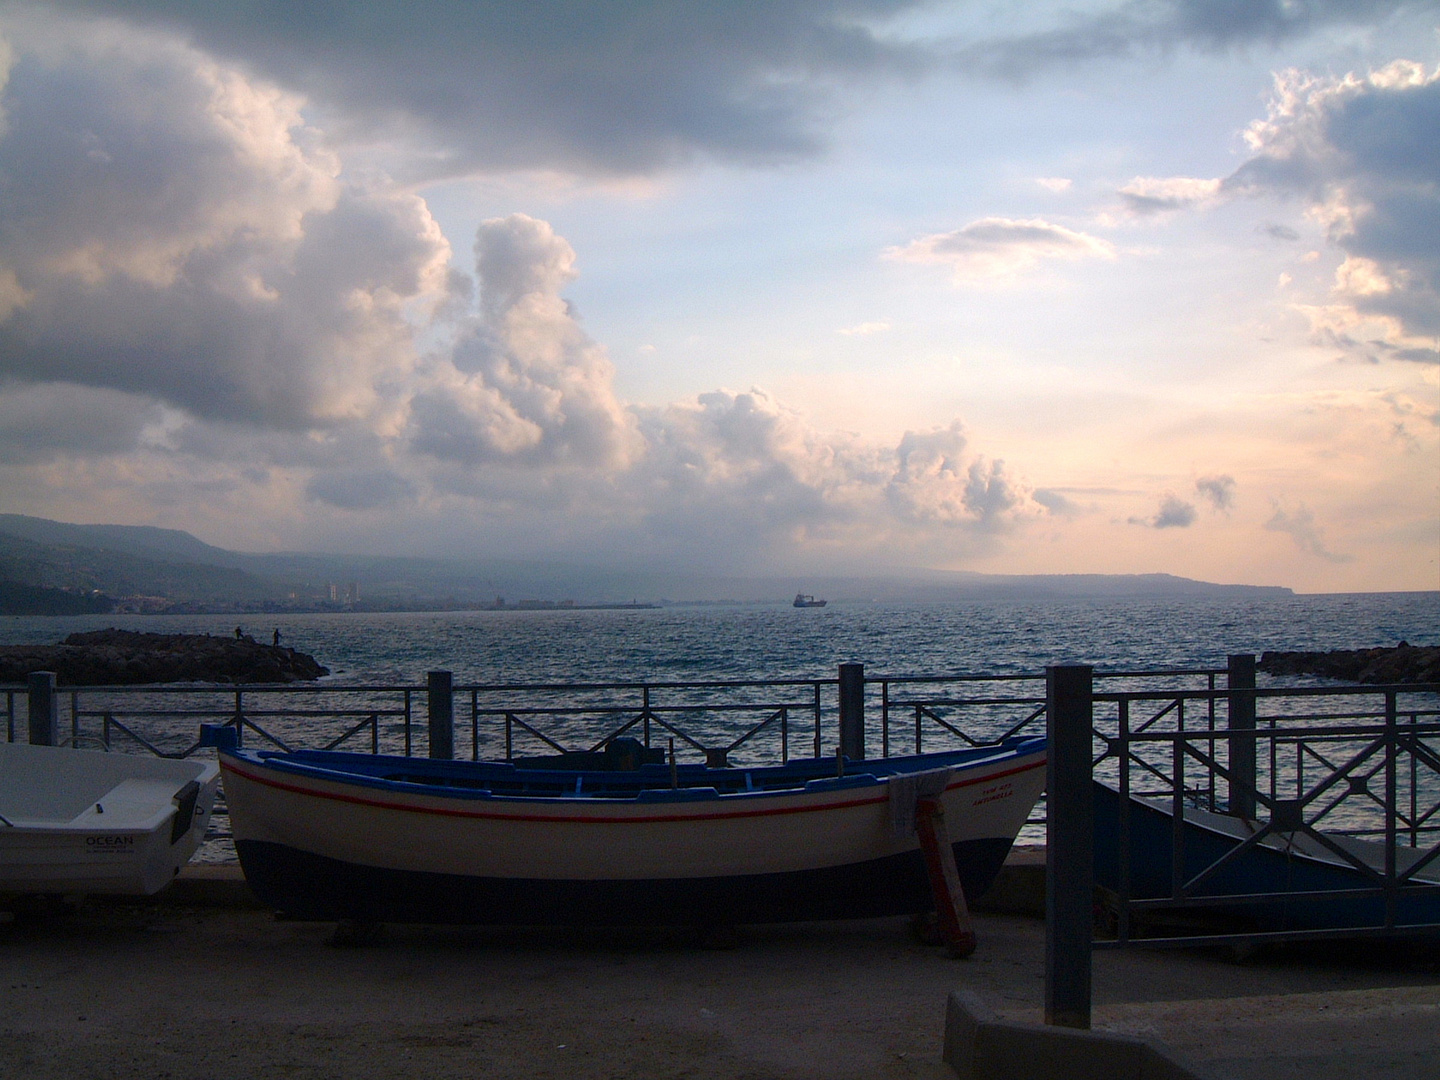 An Evening in Pizzo